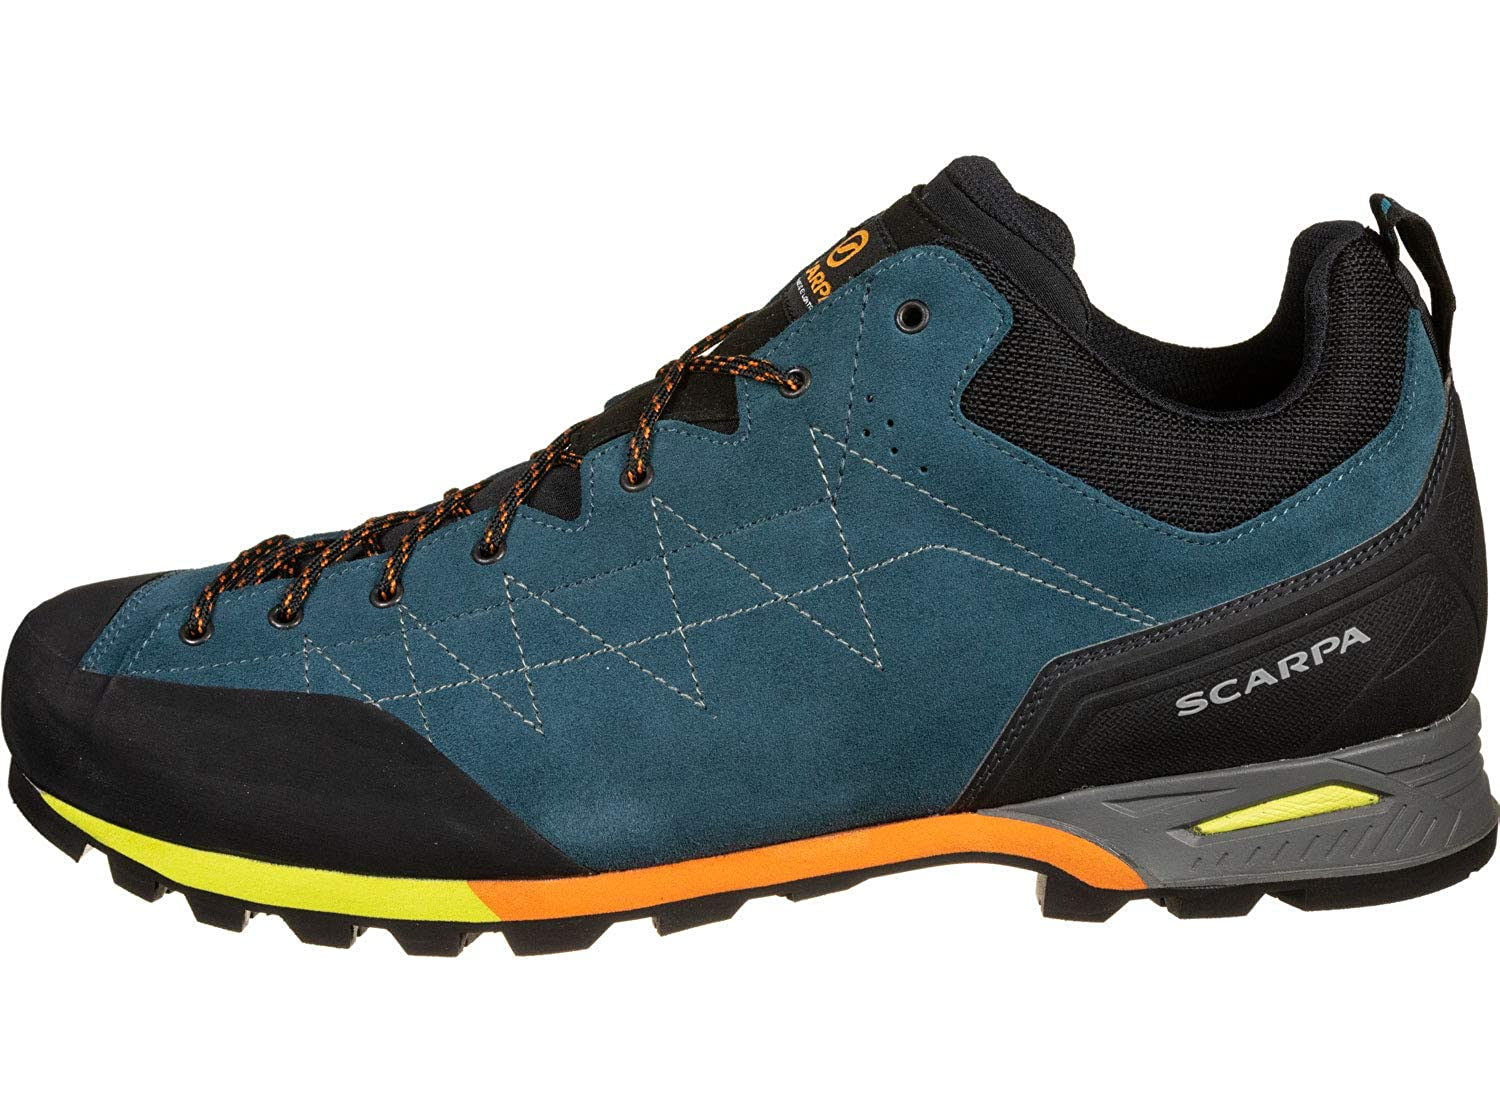 Scarpa Zodiac Tech Approach Hiking Chaussure SS18